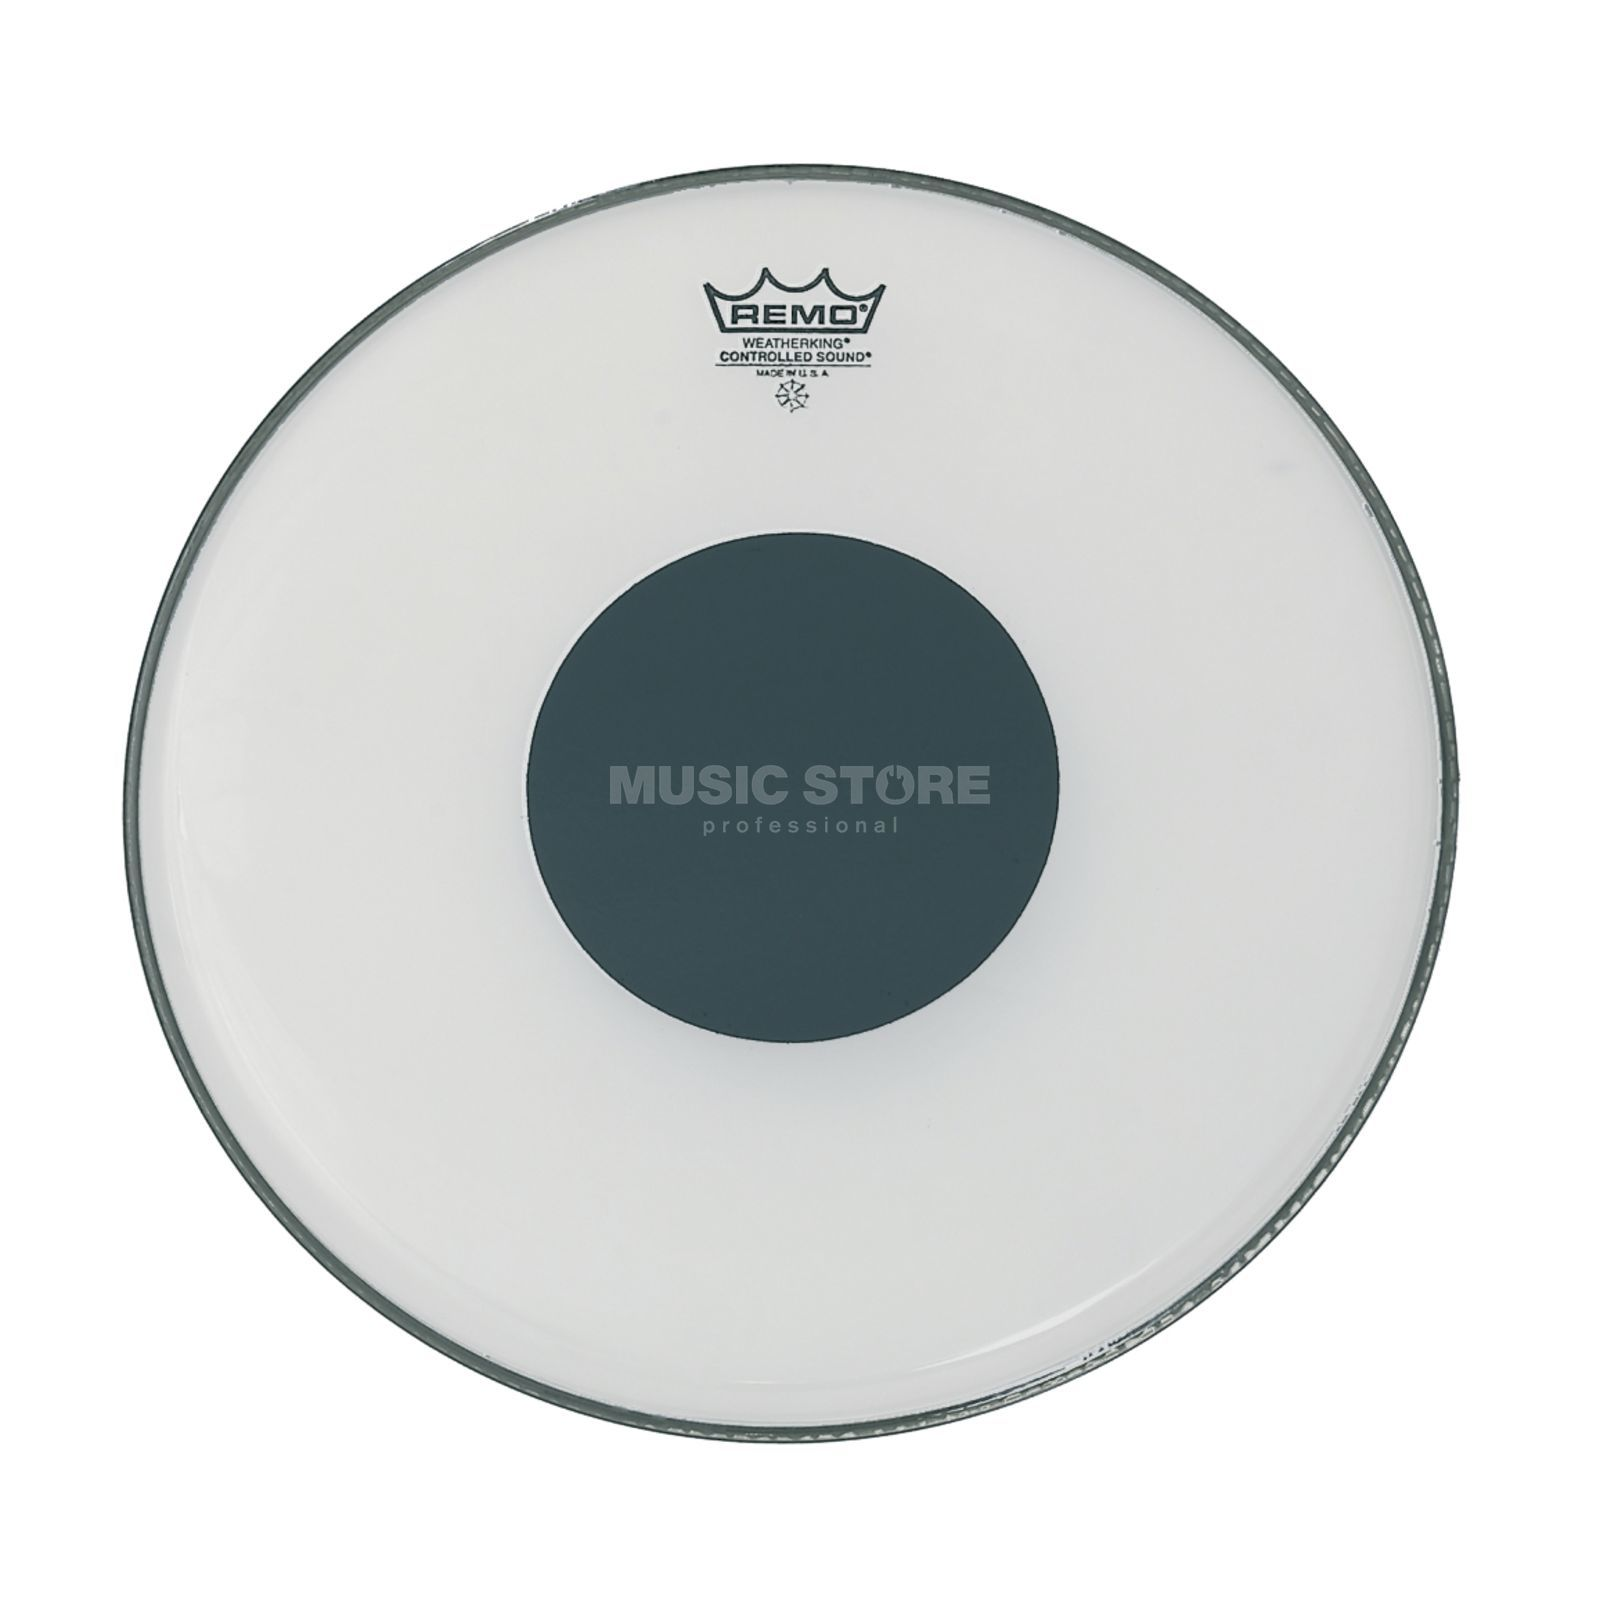 "Remo CS Ambassador White 20"", Black Dot, BassDrum Batter Изображение товара"